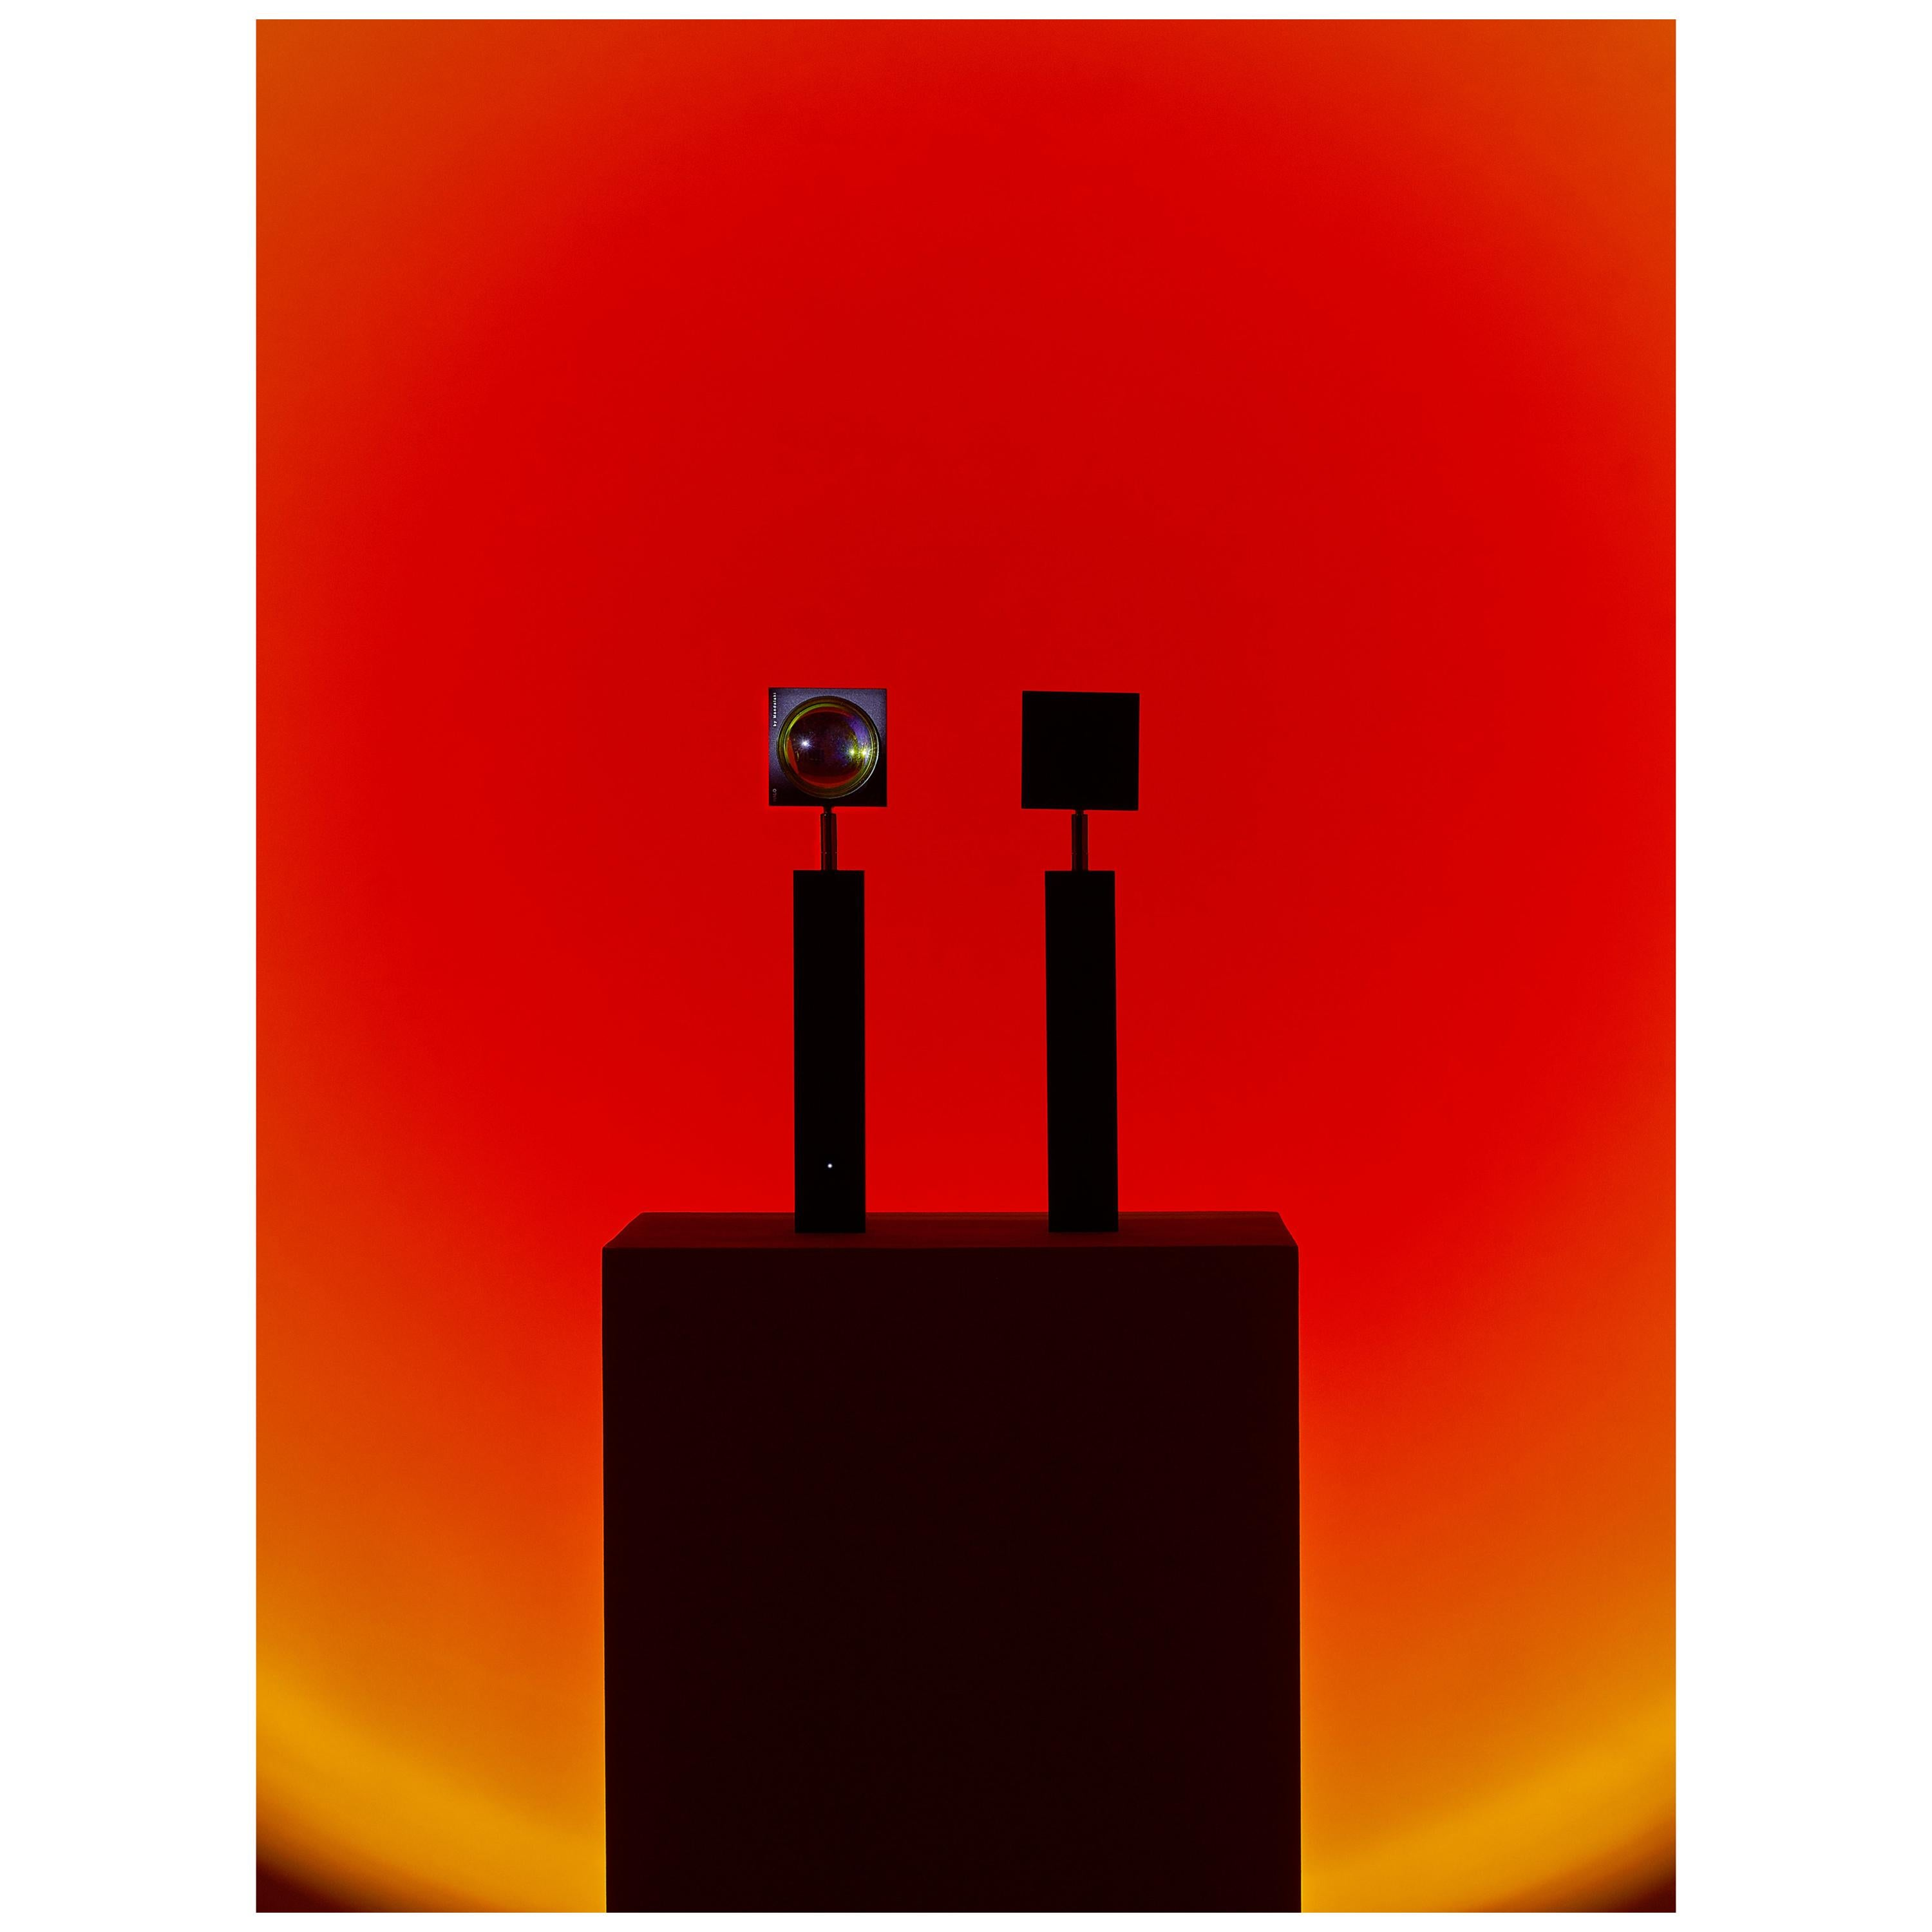 'Halo Up' Sunset Red Floor Lamp or Color Projector by Mandalaki Studio